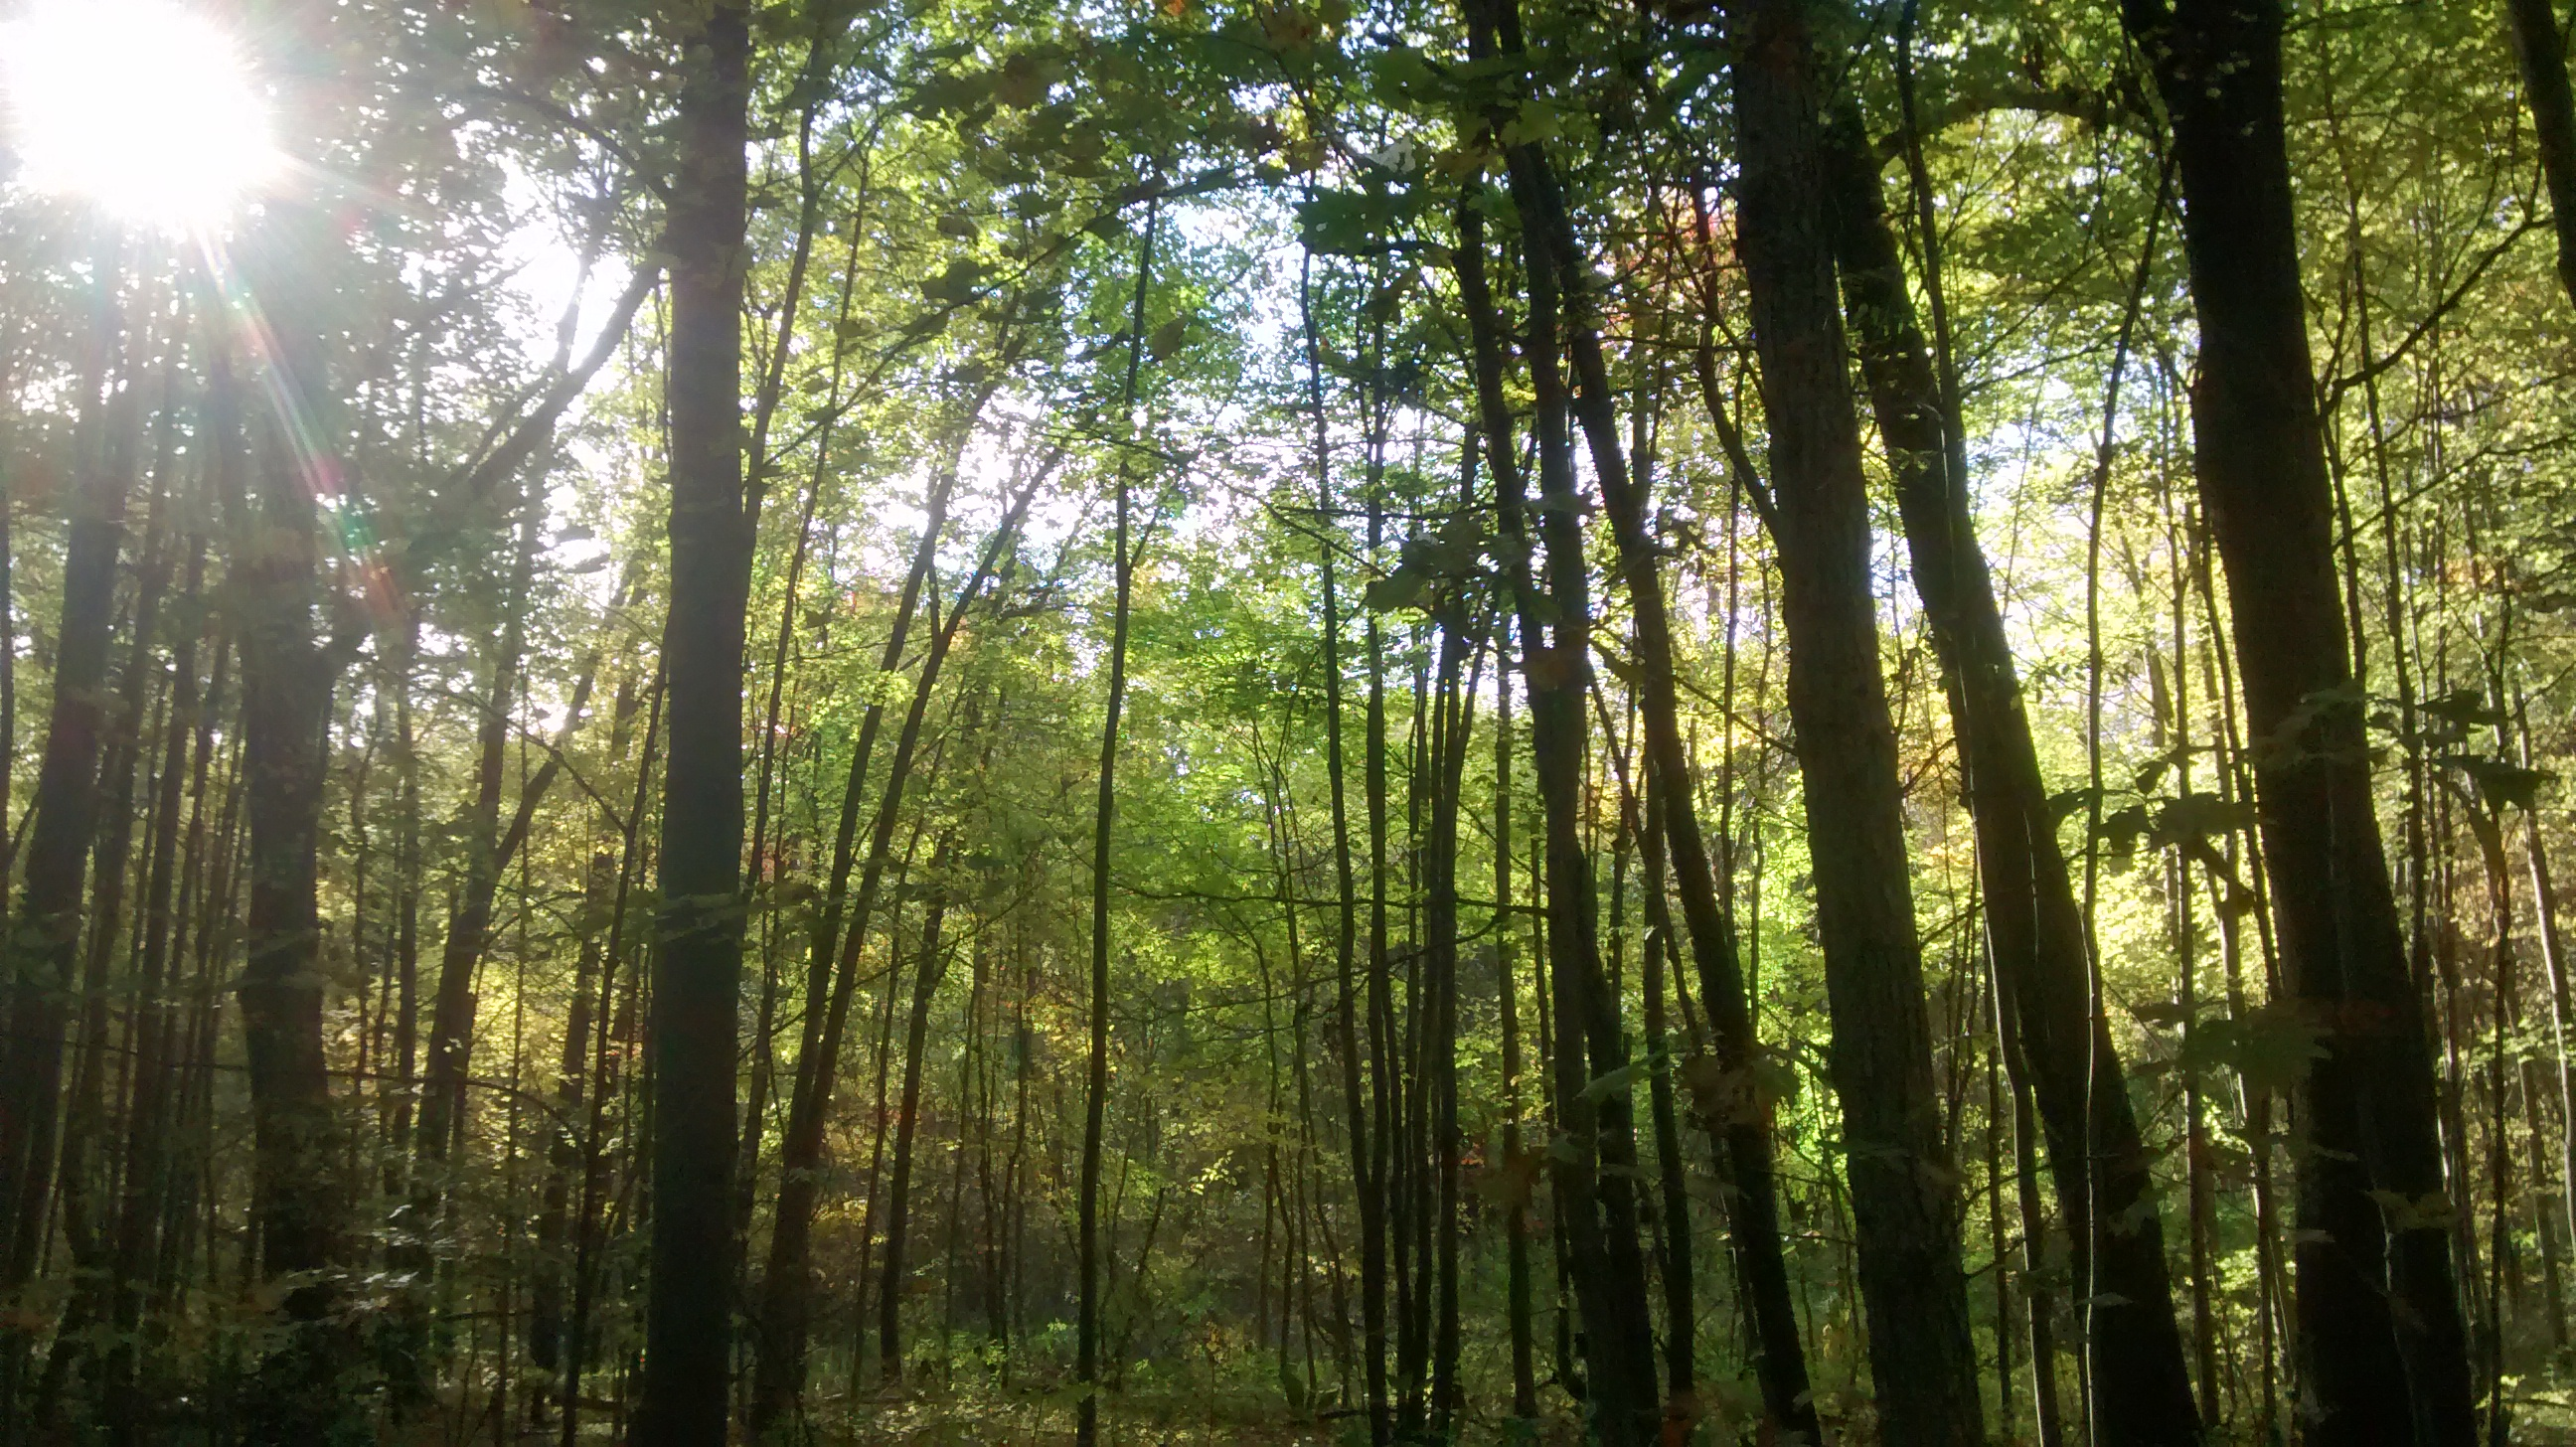 The sun shines dimly through thick woods with tall trees covered in foliage.